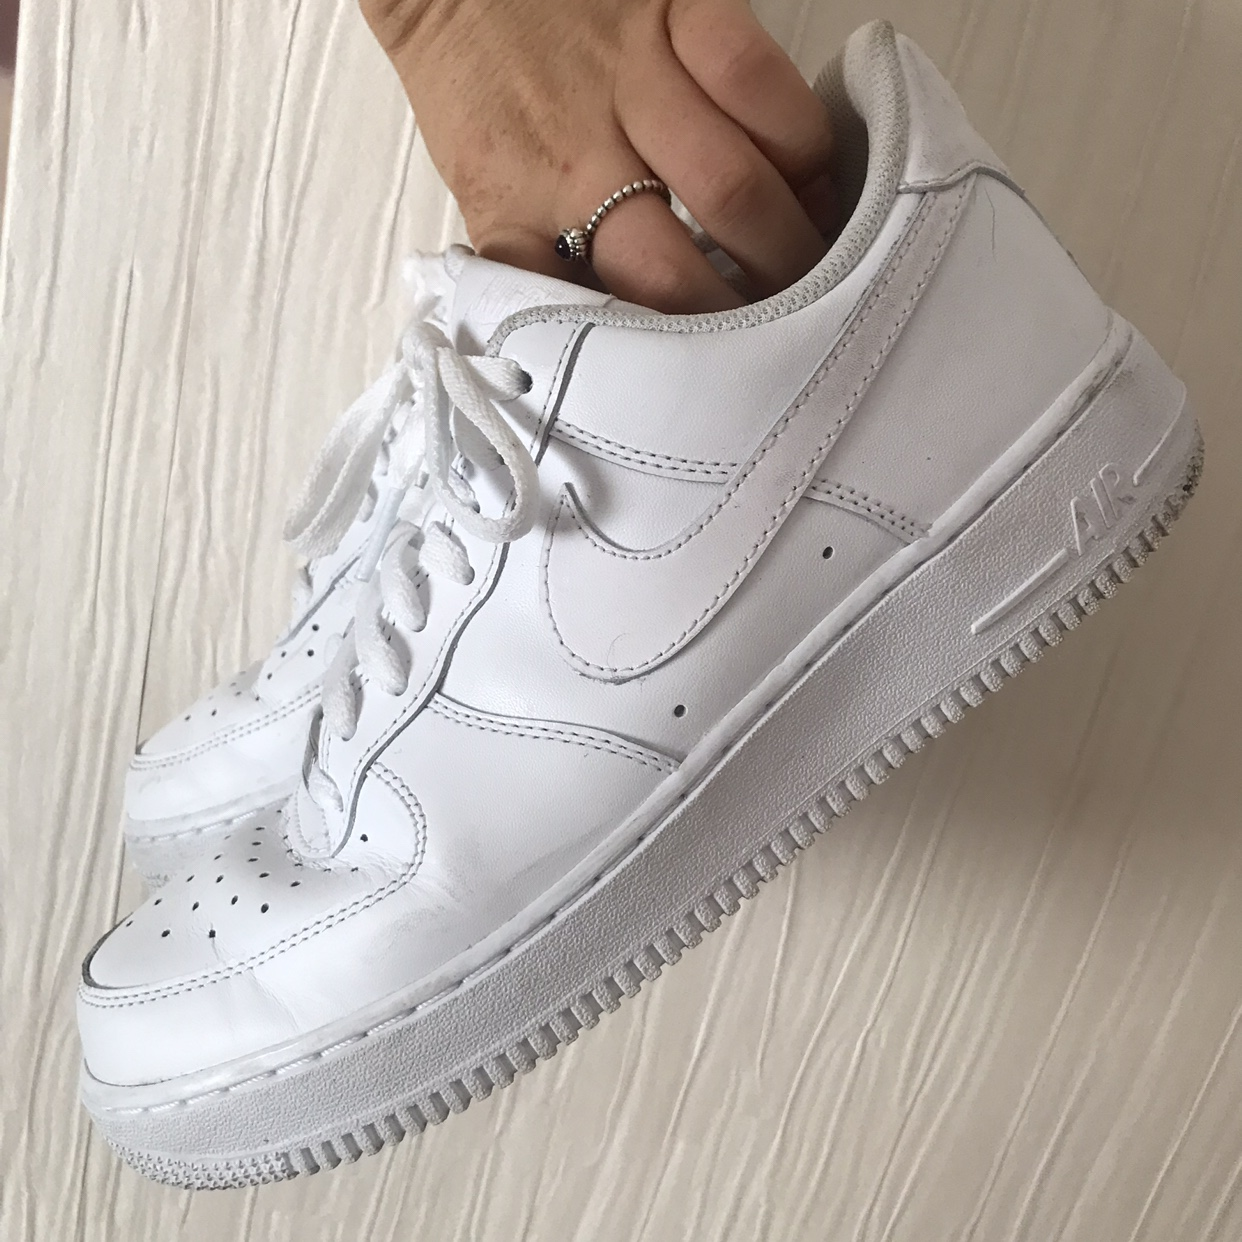 Nike Air Force 1 Low Women S Size 7 Worn Twice Depop